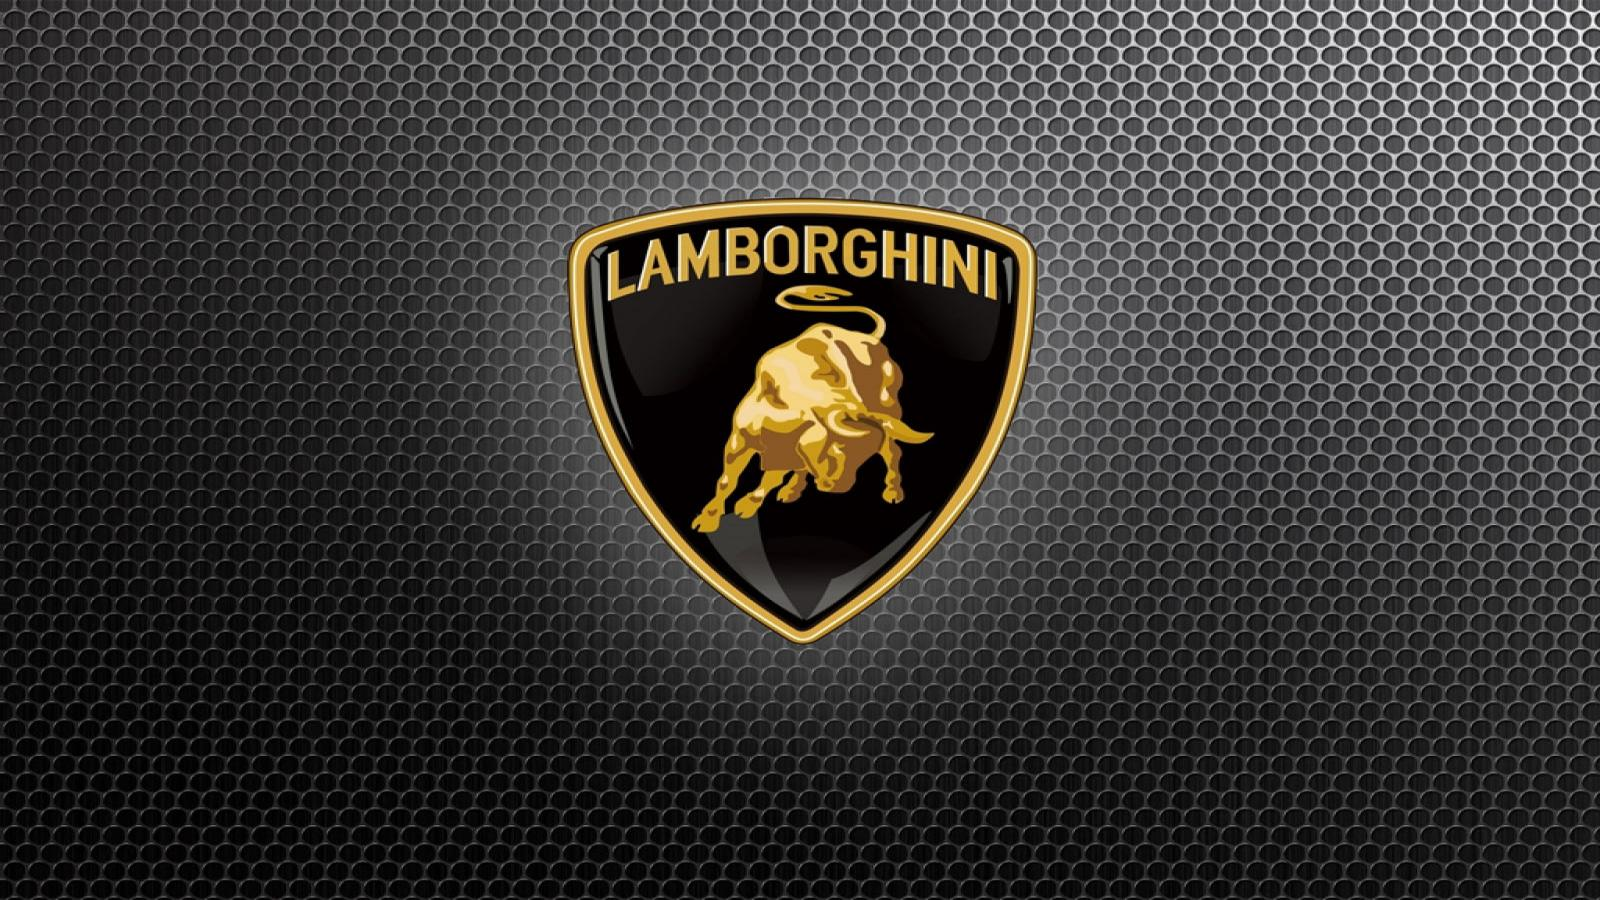 Adidas Logo 3d Wallpapers Hd Lamborghini Logo Wallpapers Pictures Images